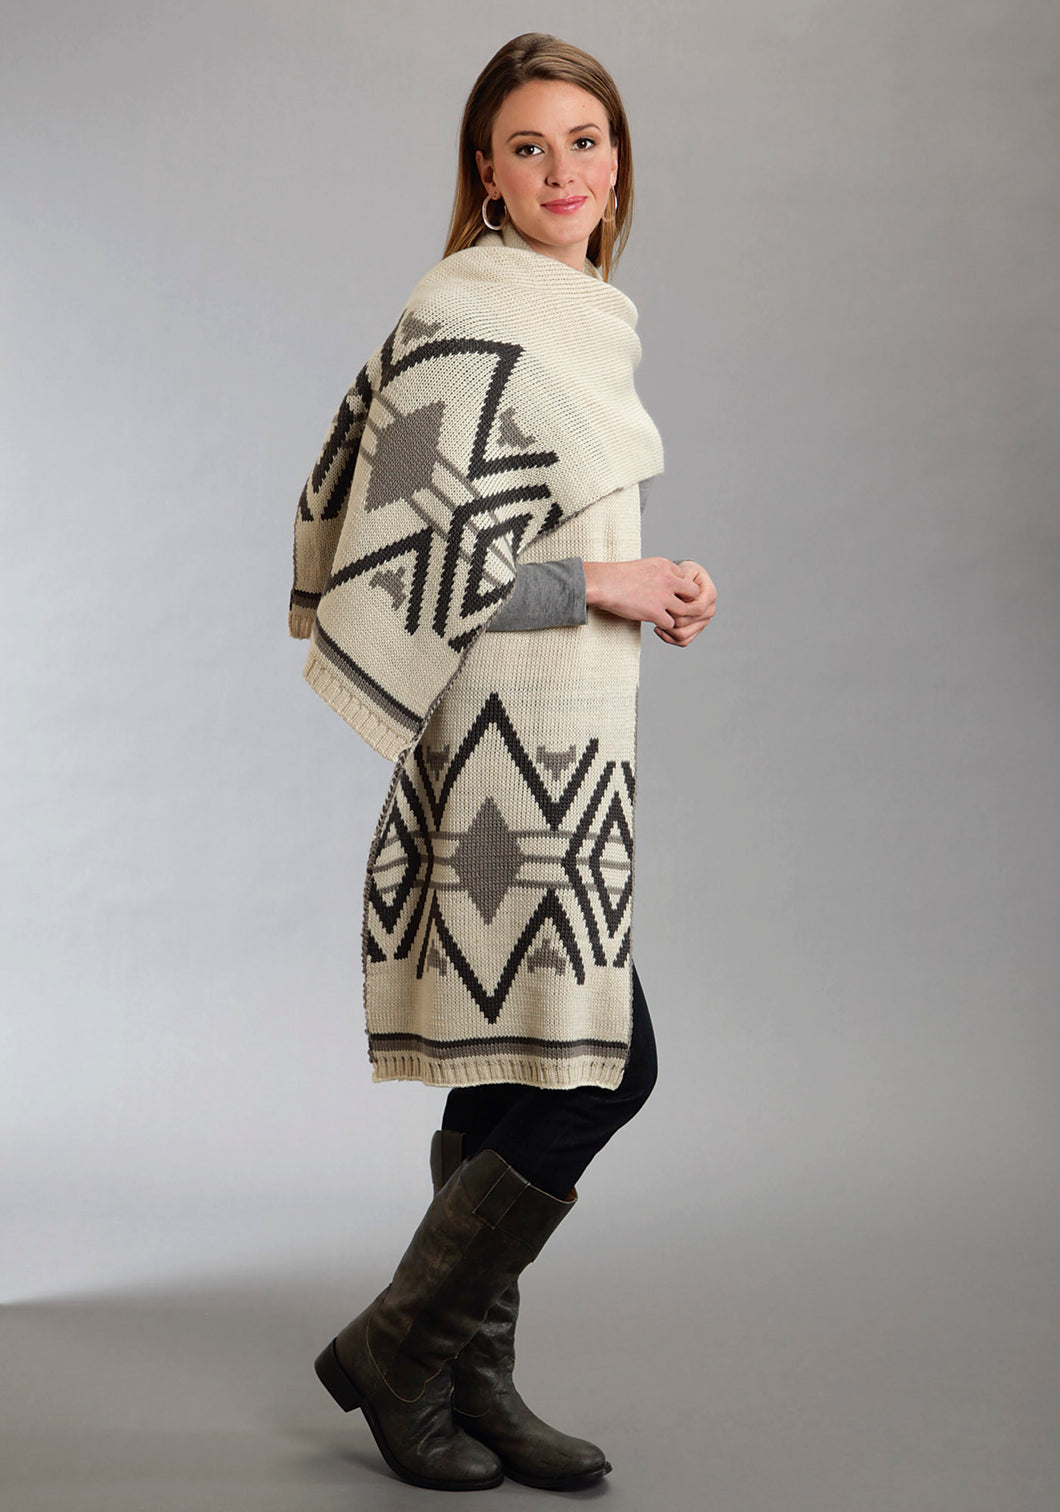 Stetson Ladies Collection- Fall Iii Stetson Ladies Scarve Aztec Pattern Intarsia Scarf